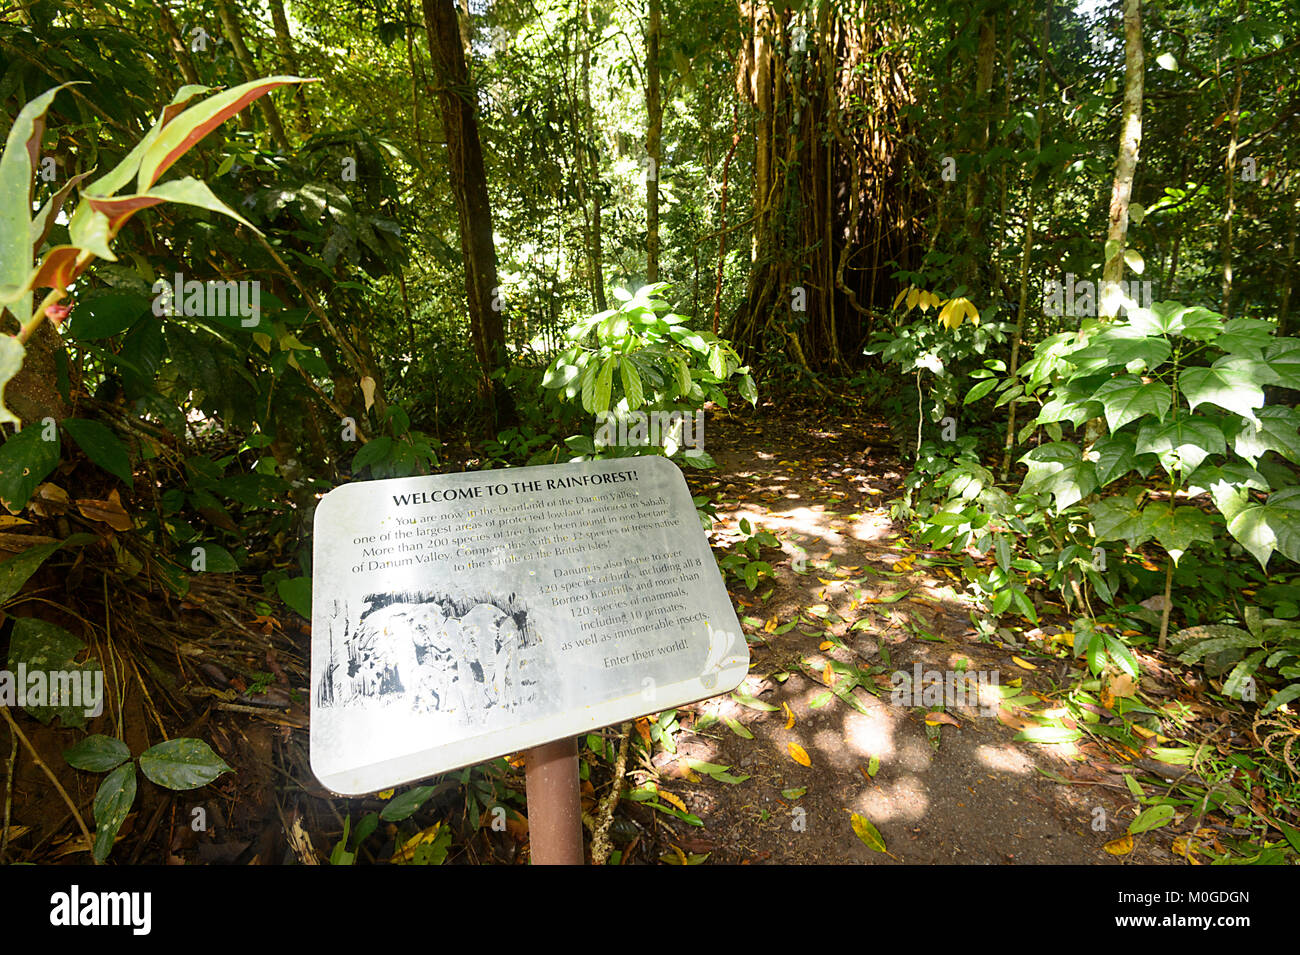 Welcome to the rainforest sign, Danum Valley Conservation Area, Borneo, Sabah, Malaysia - Stock Image